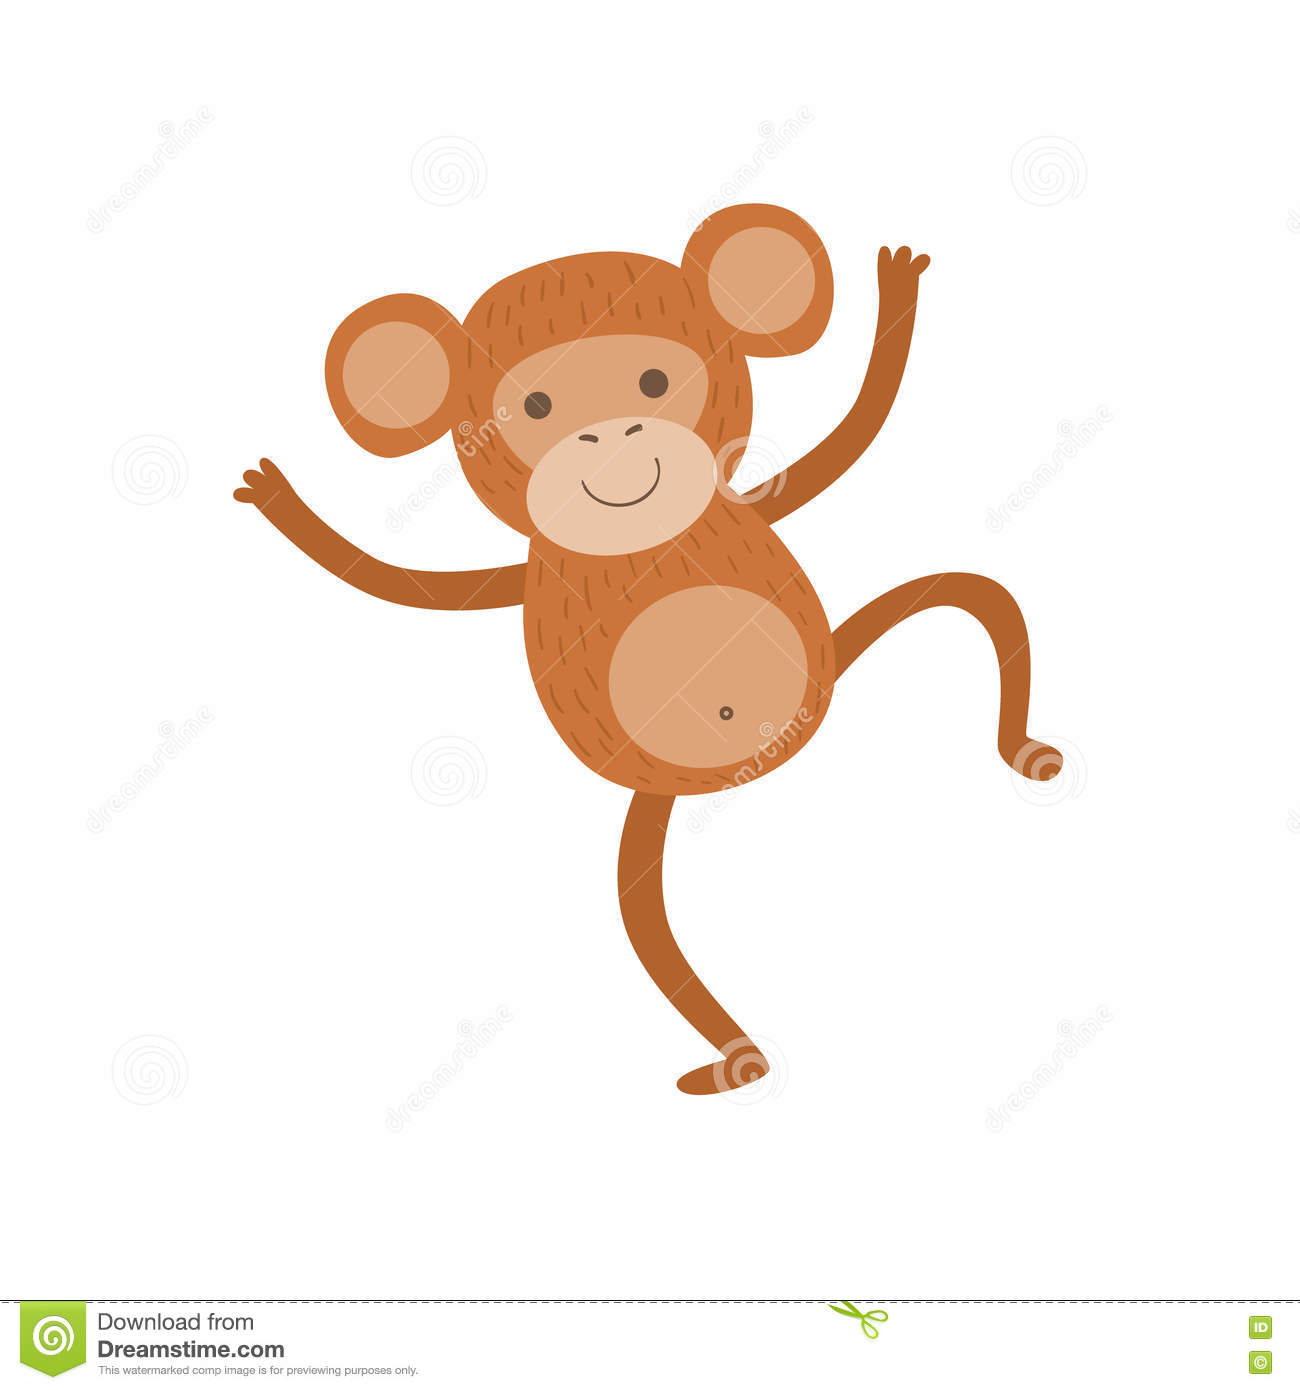 25bb1242a Monkey Stylized Childish Drawing Stock Vector - Illustration of ...